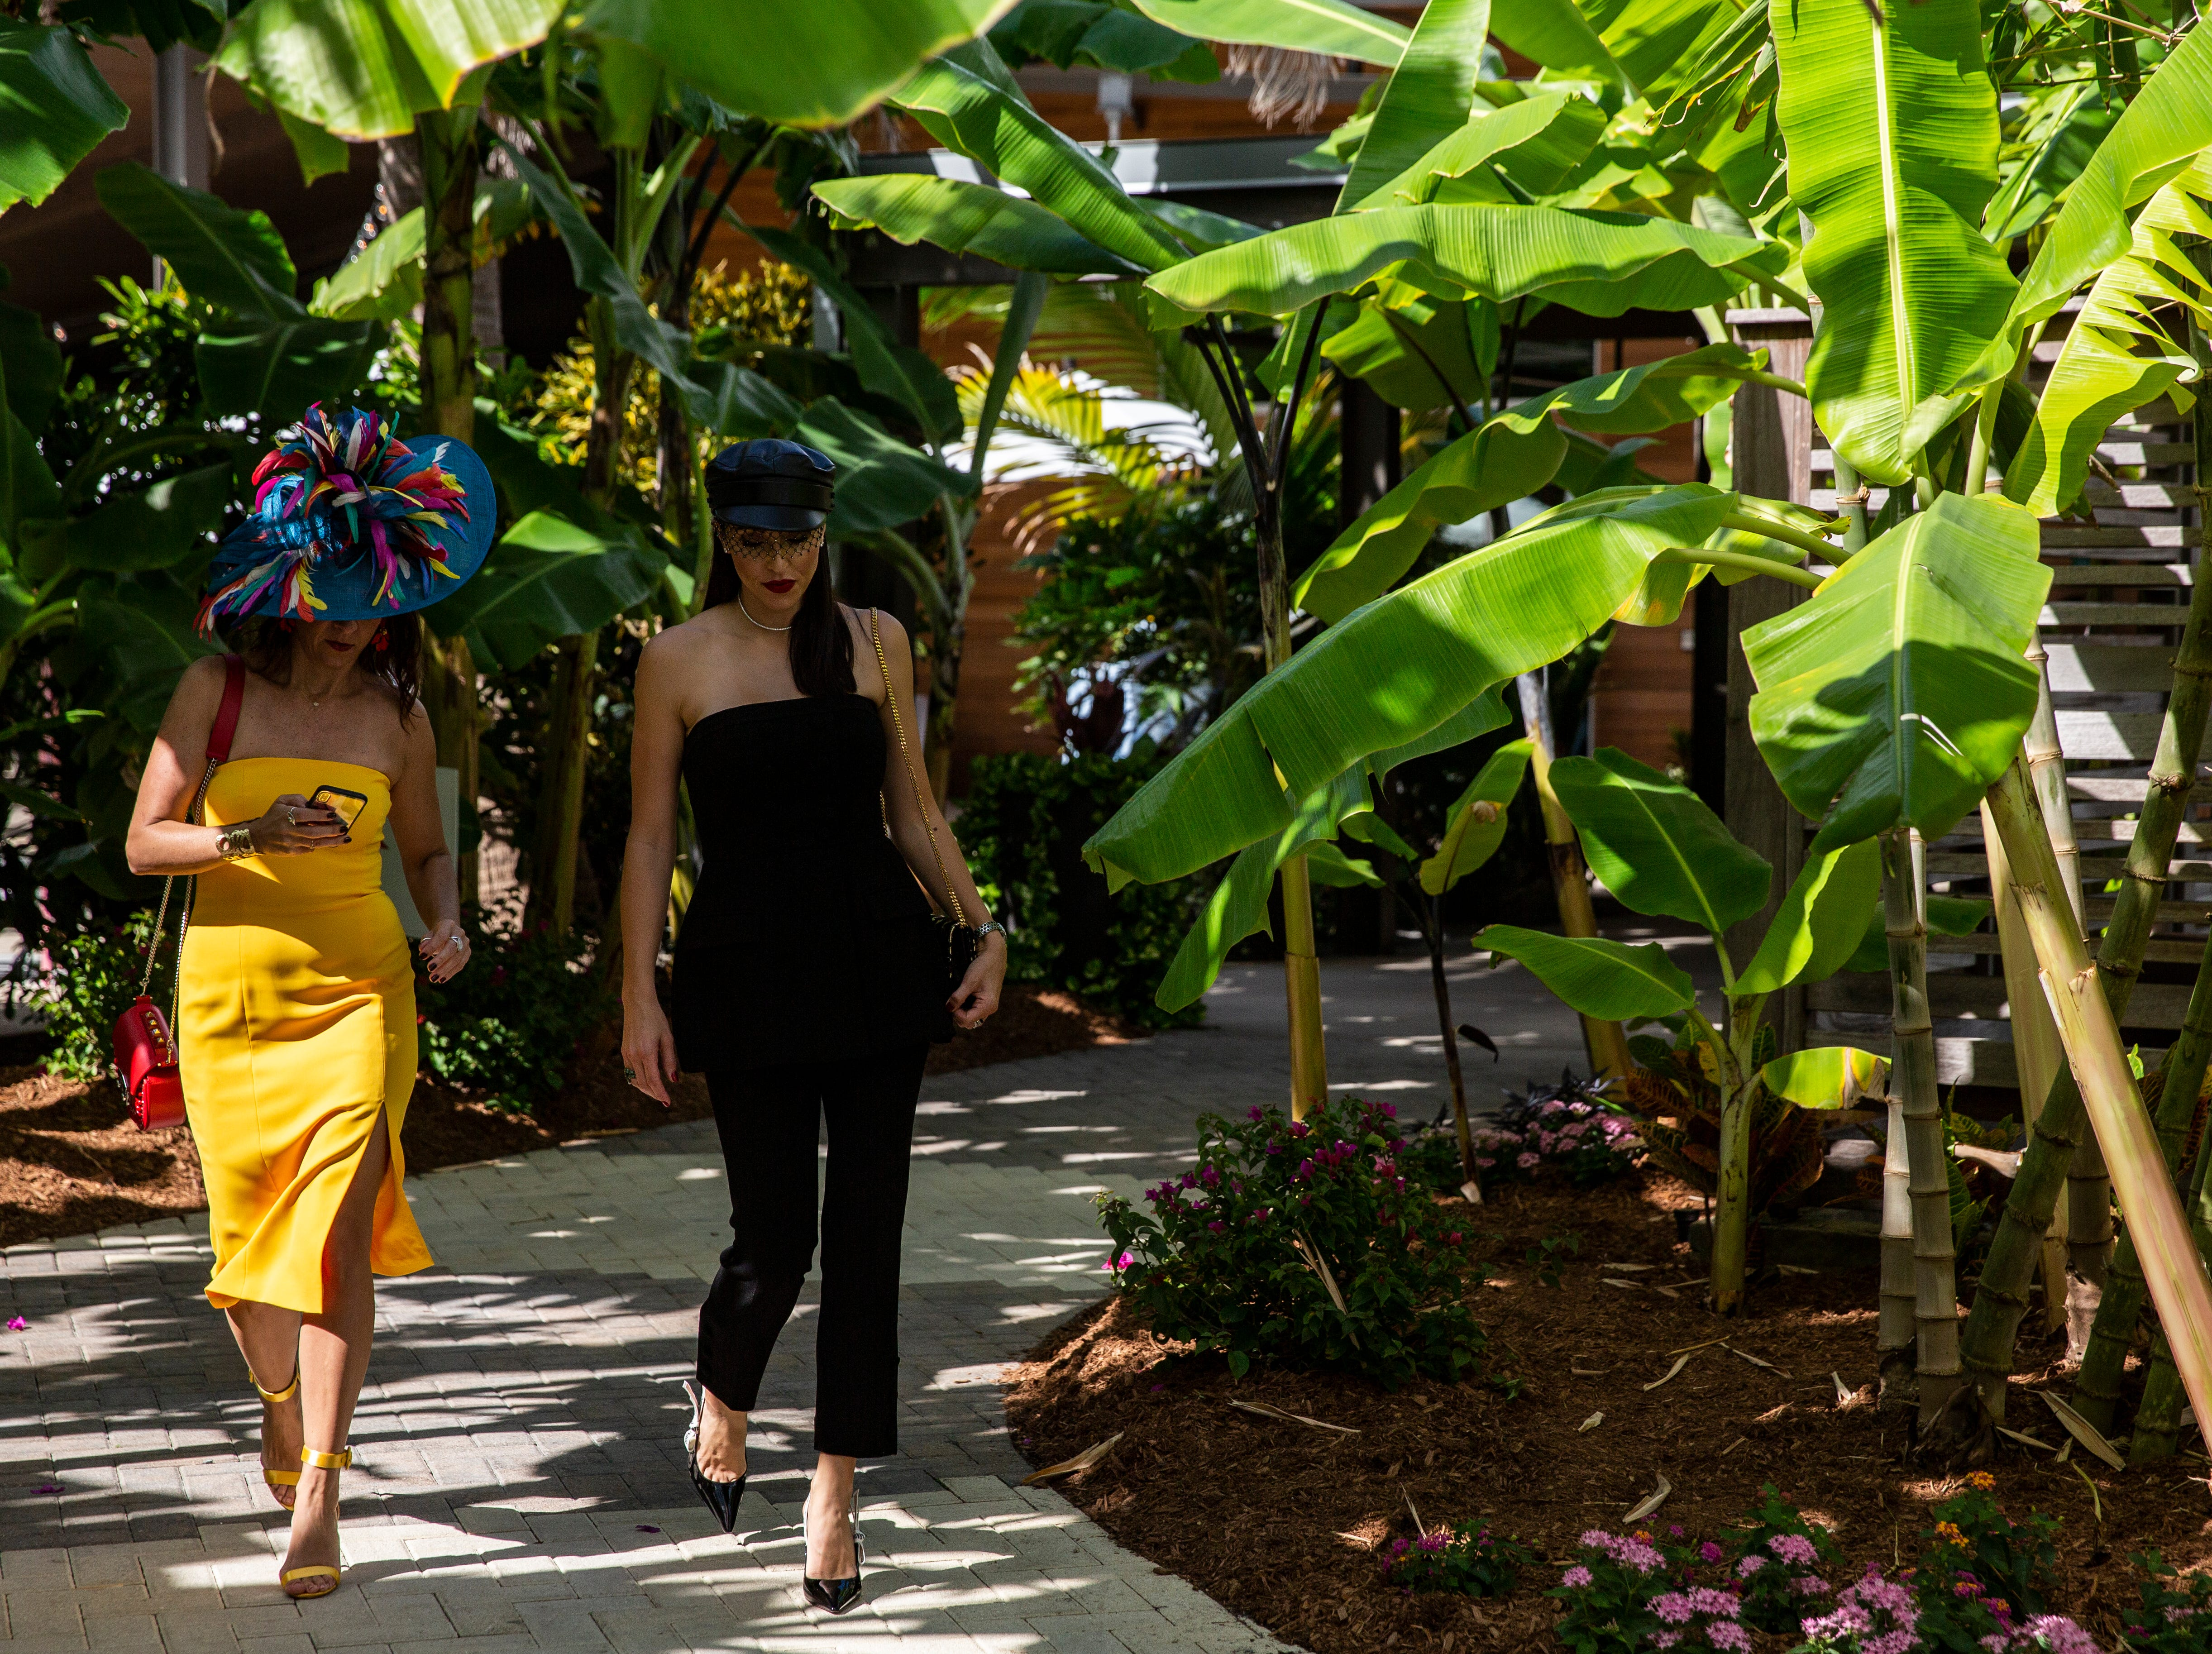 Jennifer Parisi, left and Ashley Gerry, right, from Naples, walk to the Hats in the Garden luncheon at Naples Botanical Garden on Nov. 7, 2018.